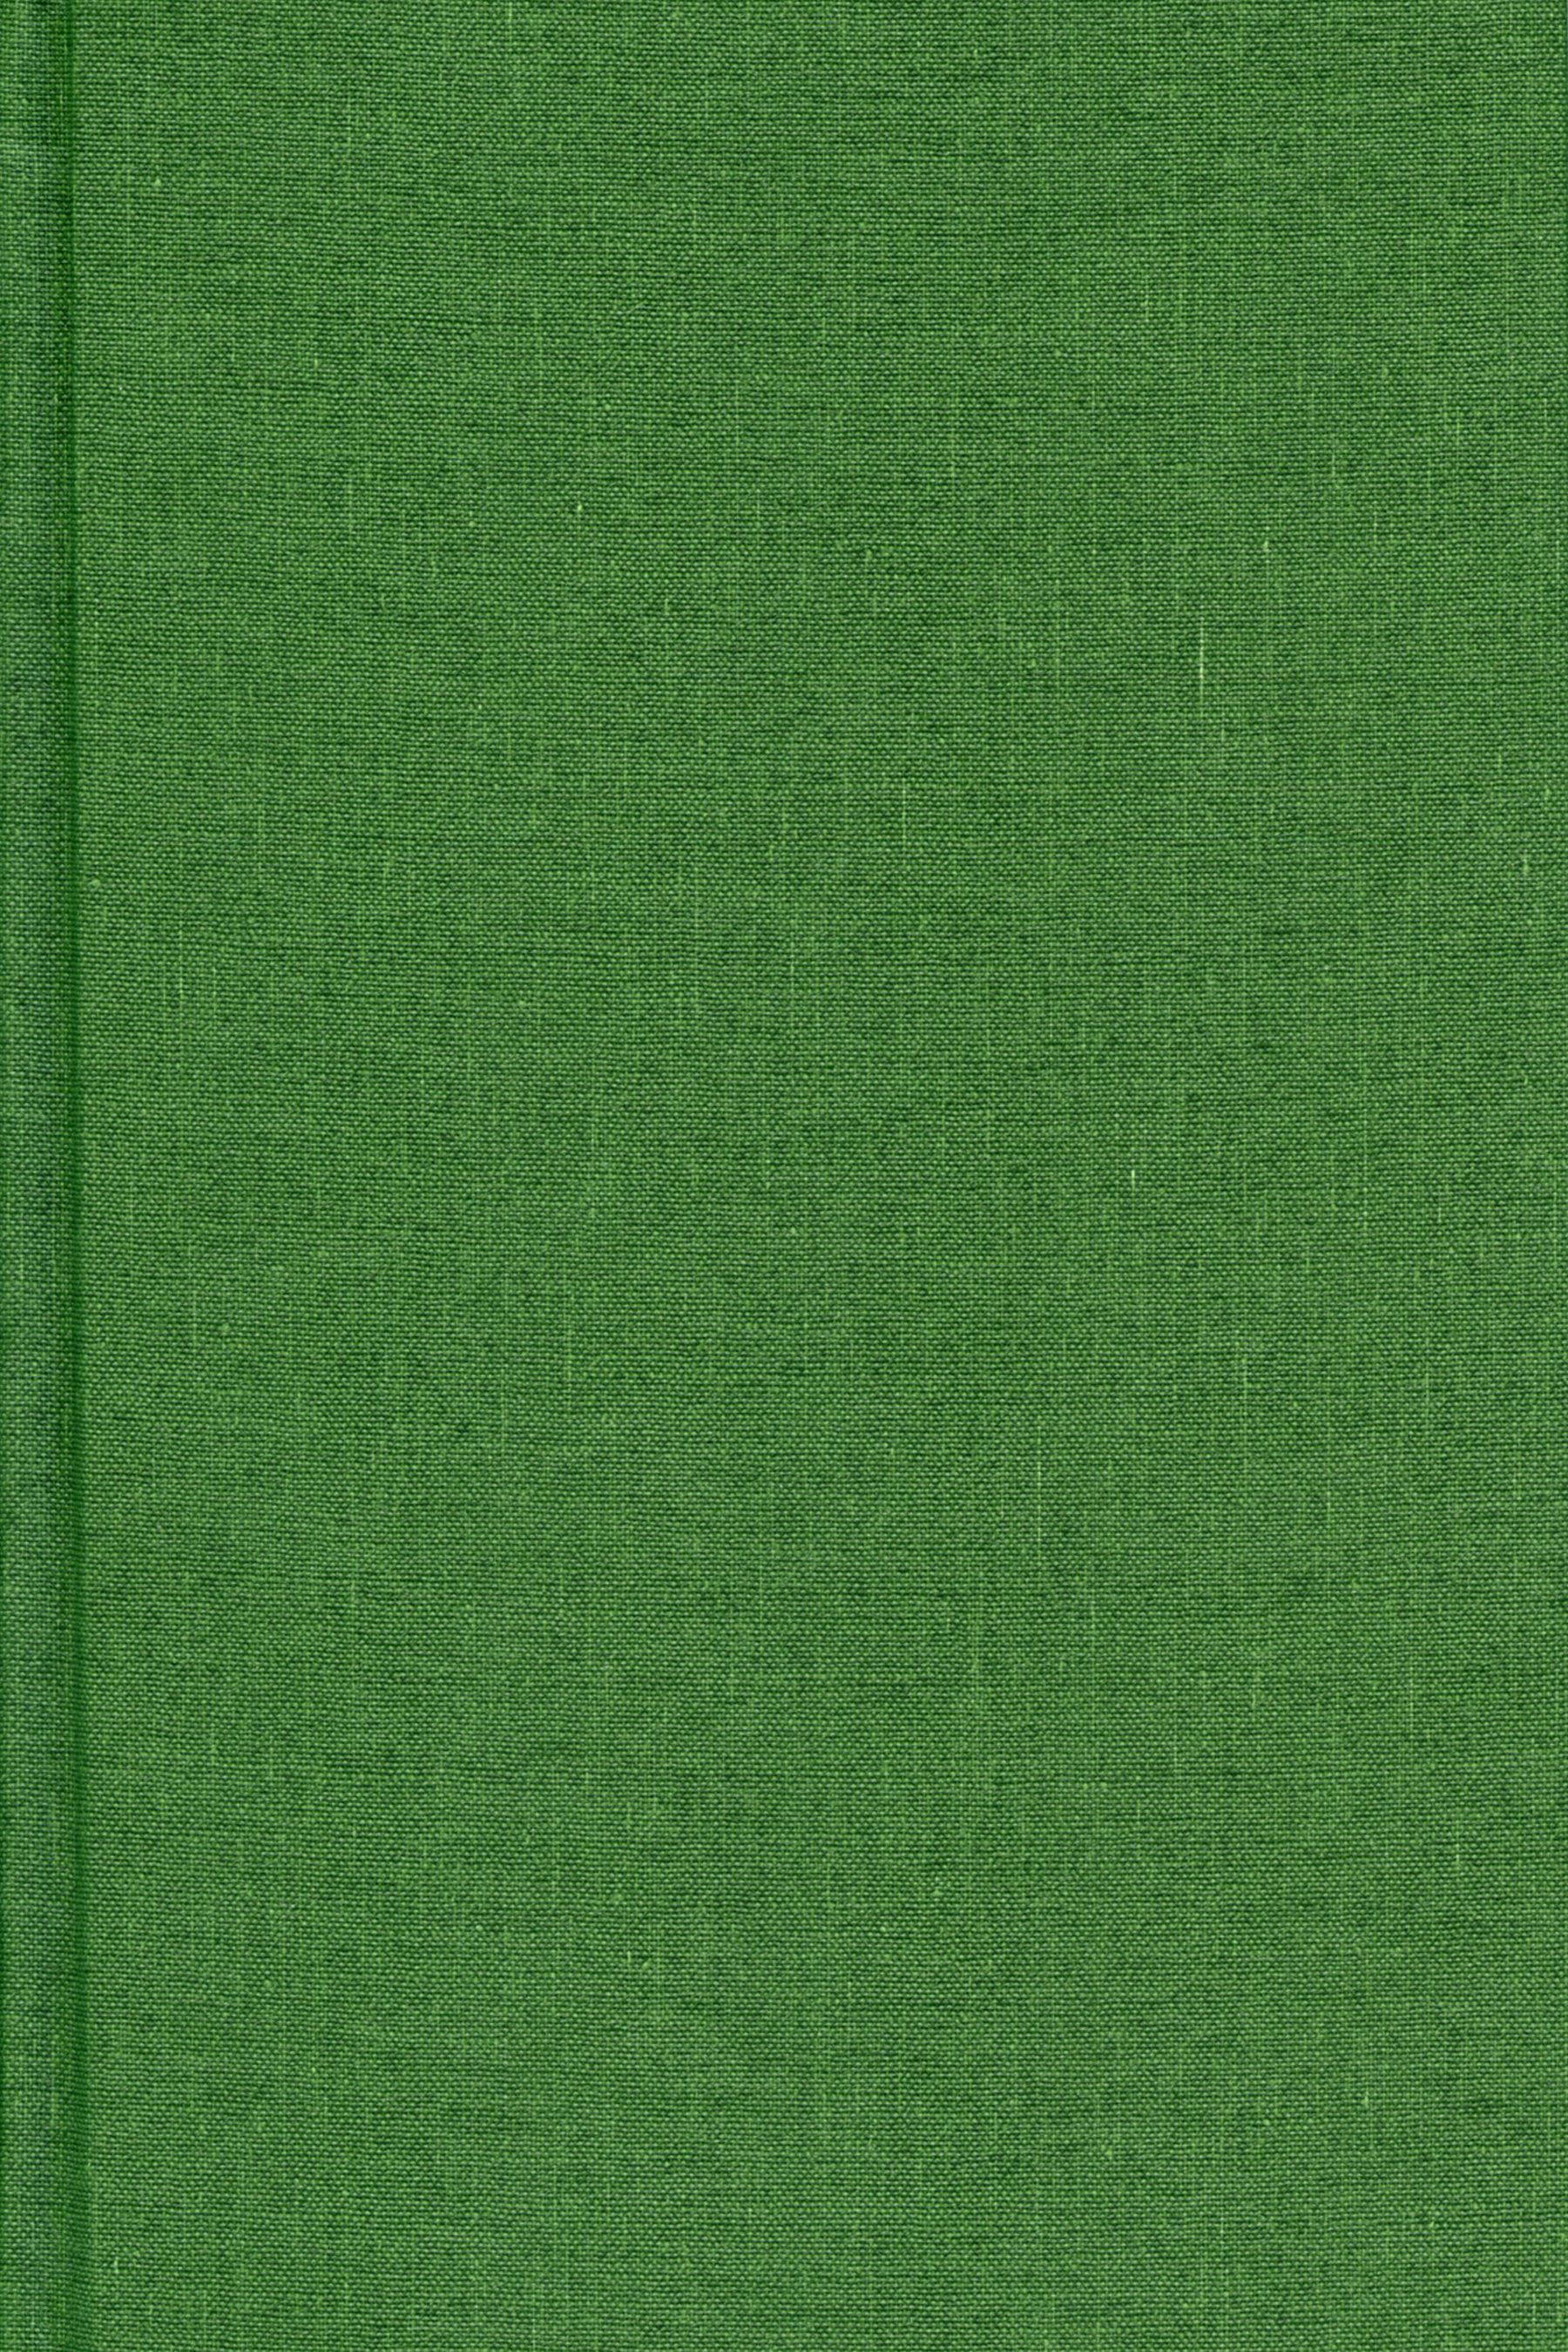 download the matrix of modernism pound eliot and early twentieth century thought 1985